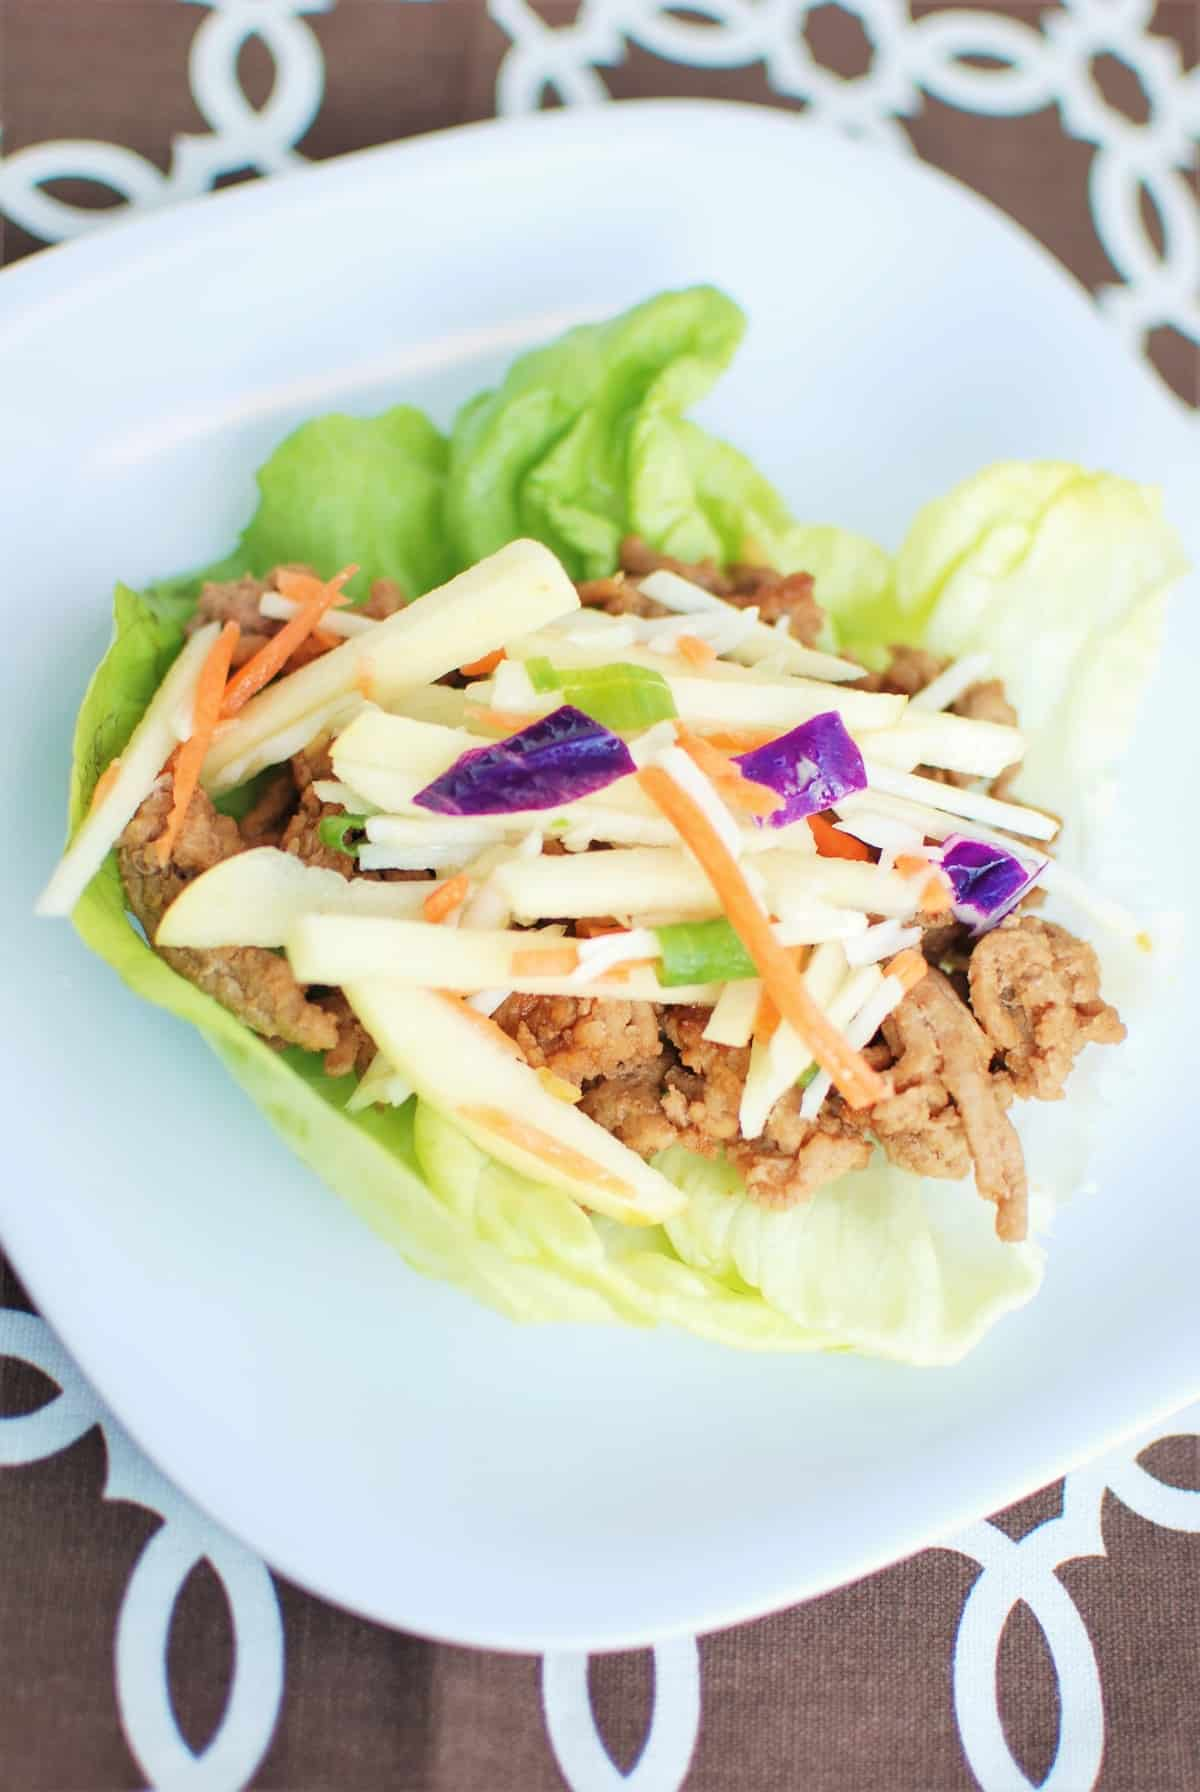 A lettuce wrap filled with hoisin ground turkey and cabbage apple slaw, on a plate, next to a brown napkin.